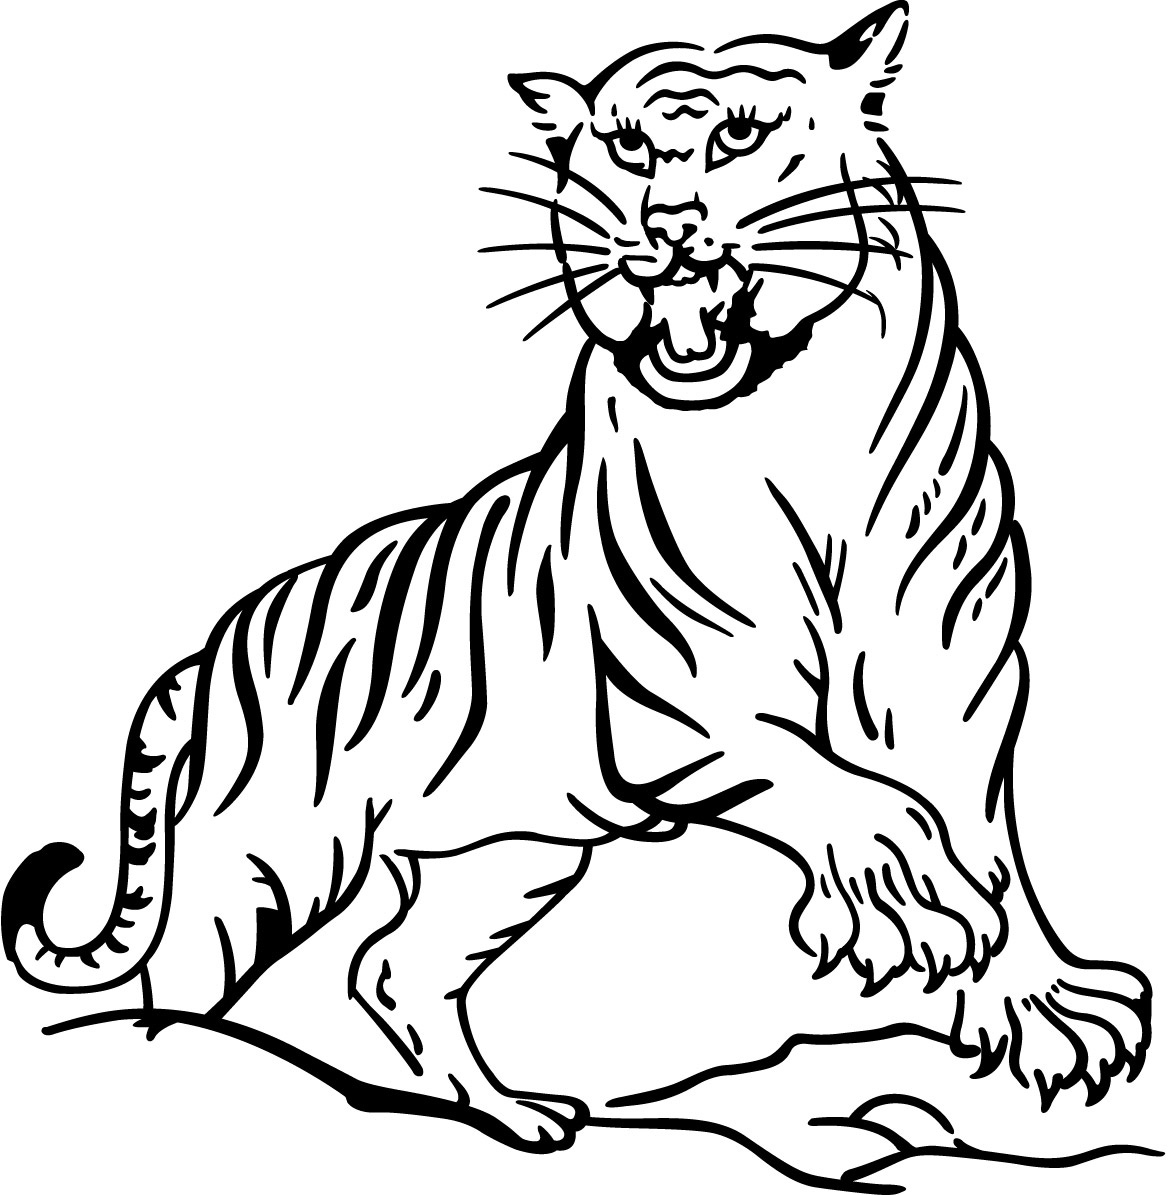 Preschool Coloring Pages (24)